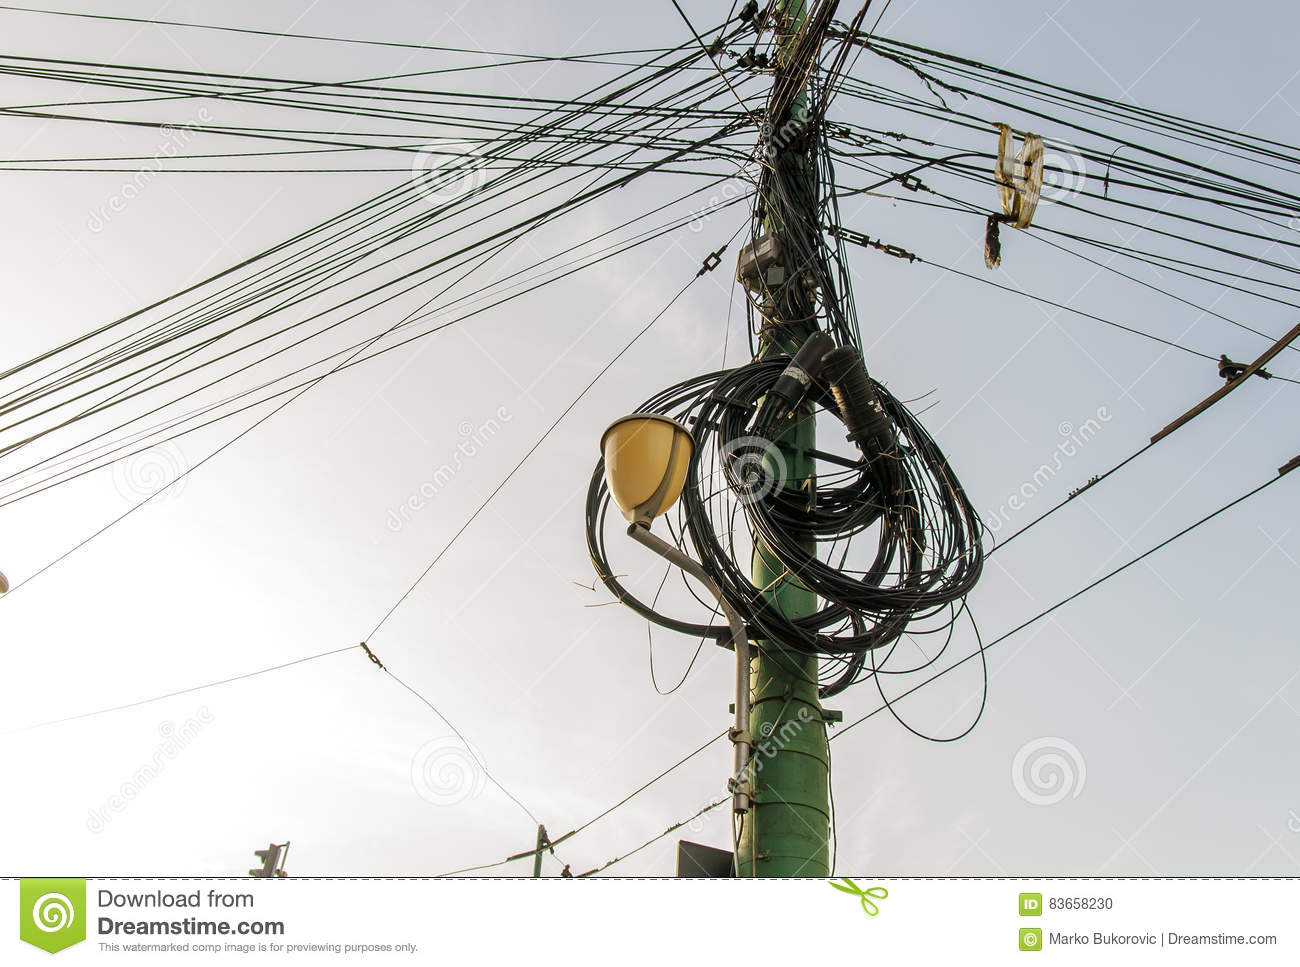 Street Light Electrical Wiring Block And Schematic Diagrams Diy Electricity Pole Complicated On The Rh Dreamstime Com Lights For